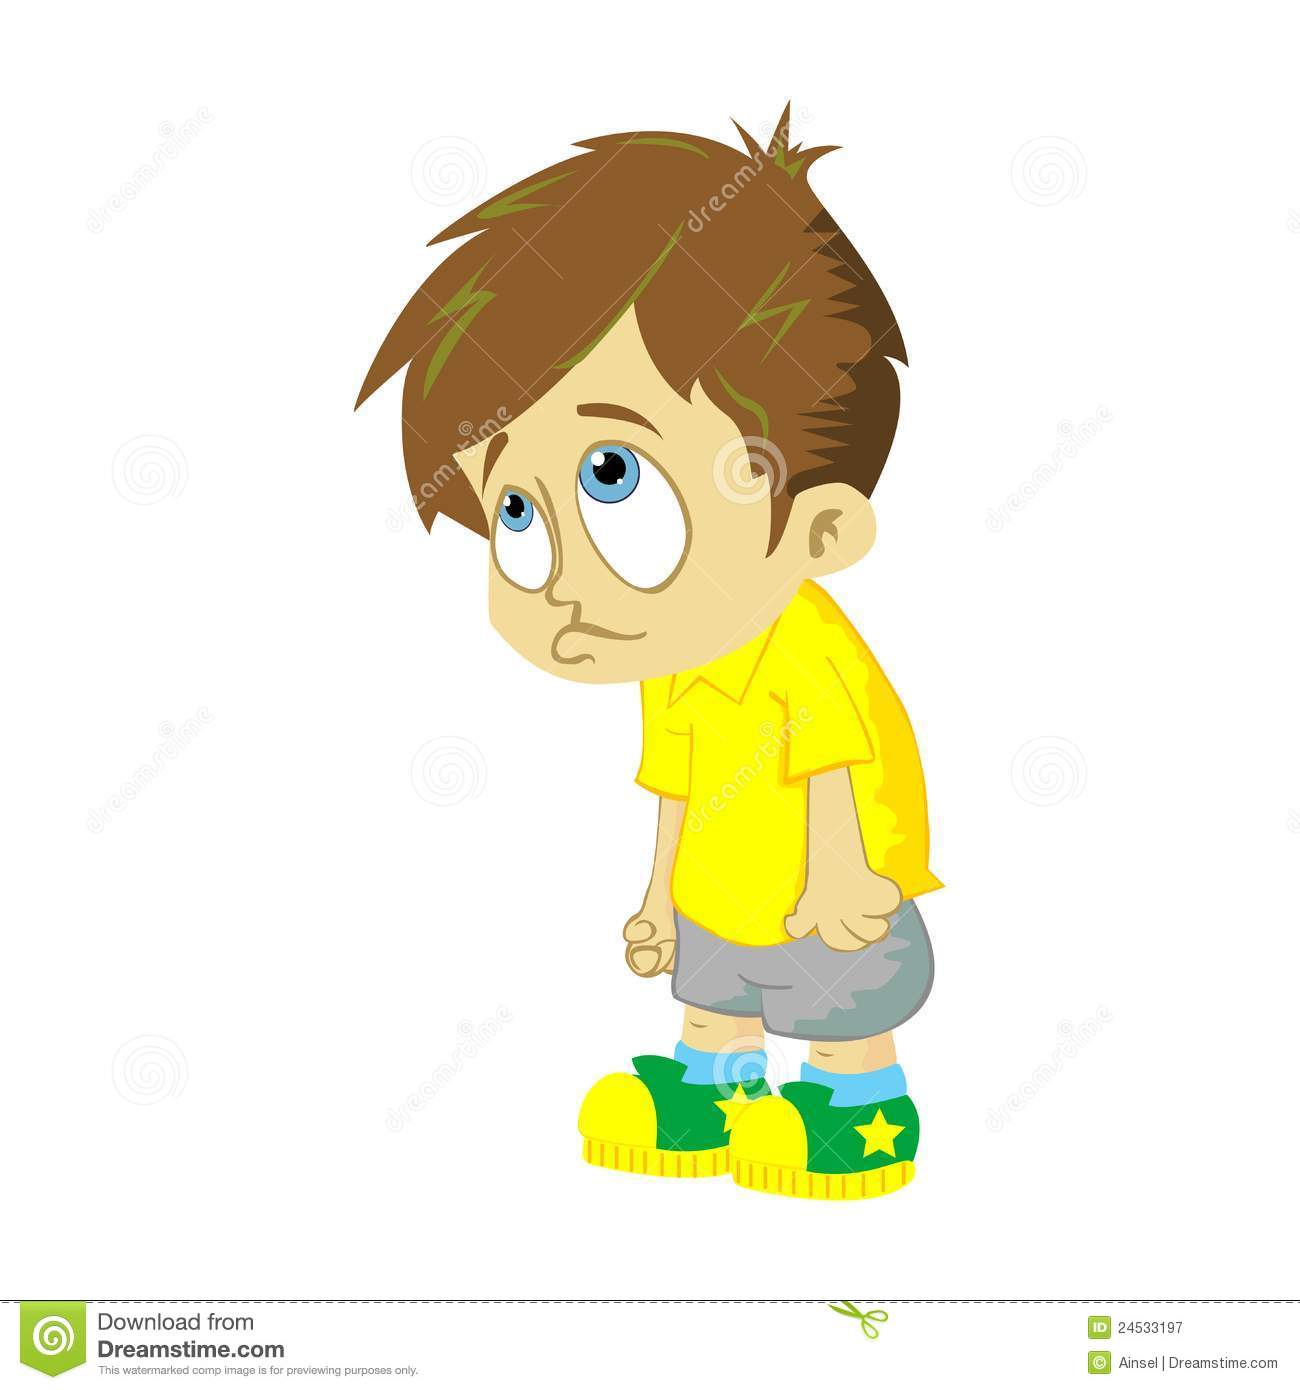 Boy clipart disappointed Sad Sad Child Face kid